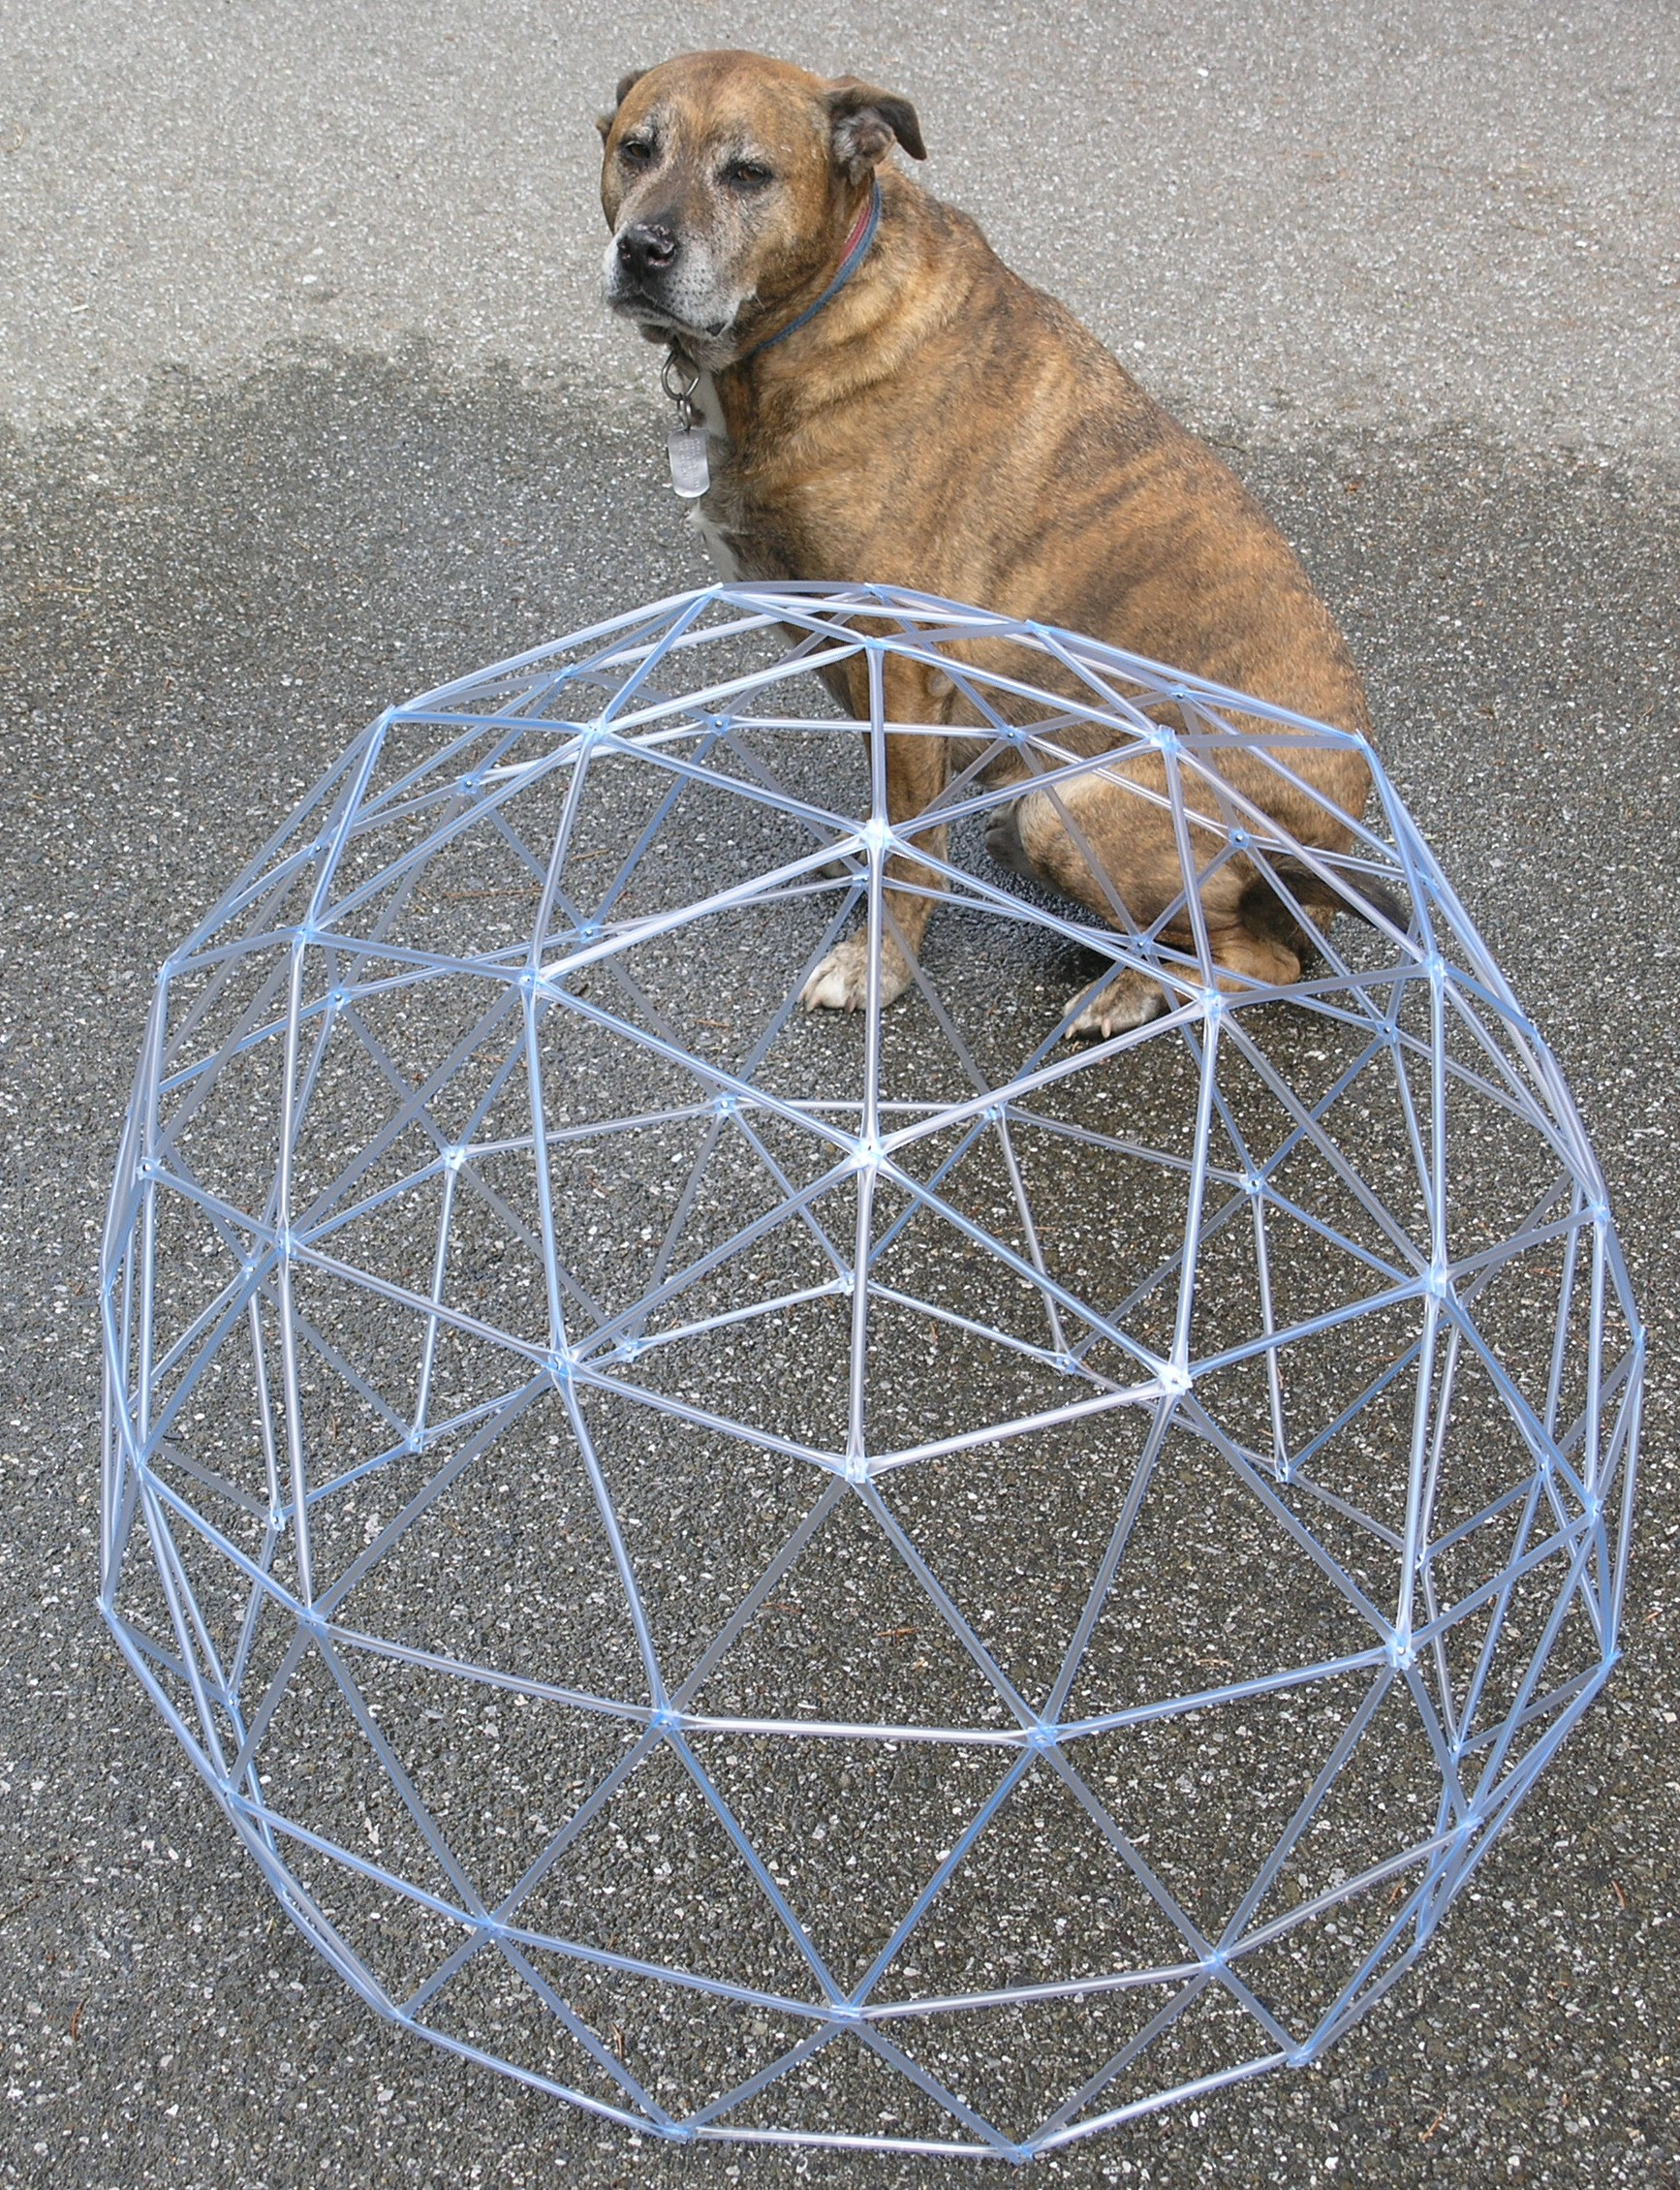 Dog and dome